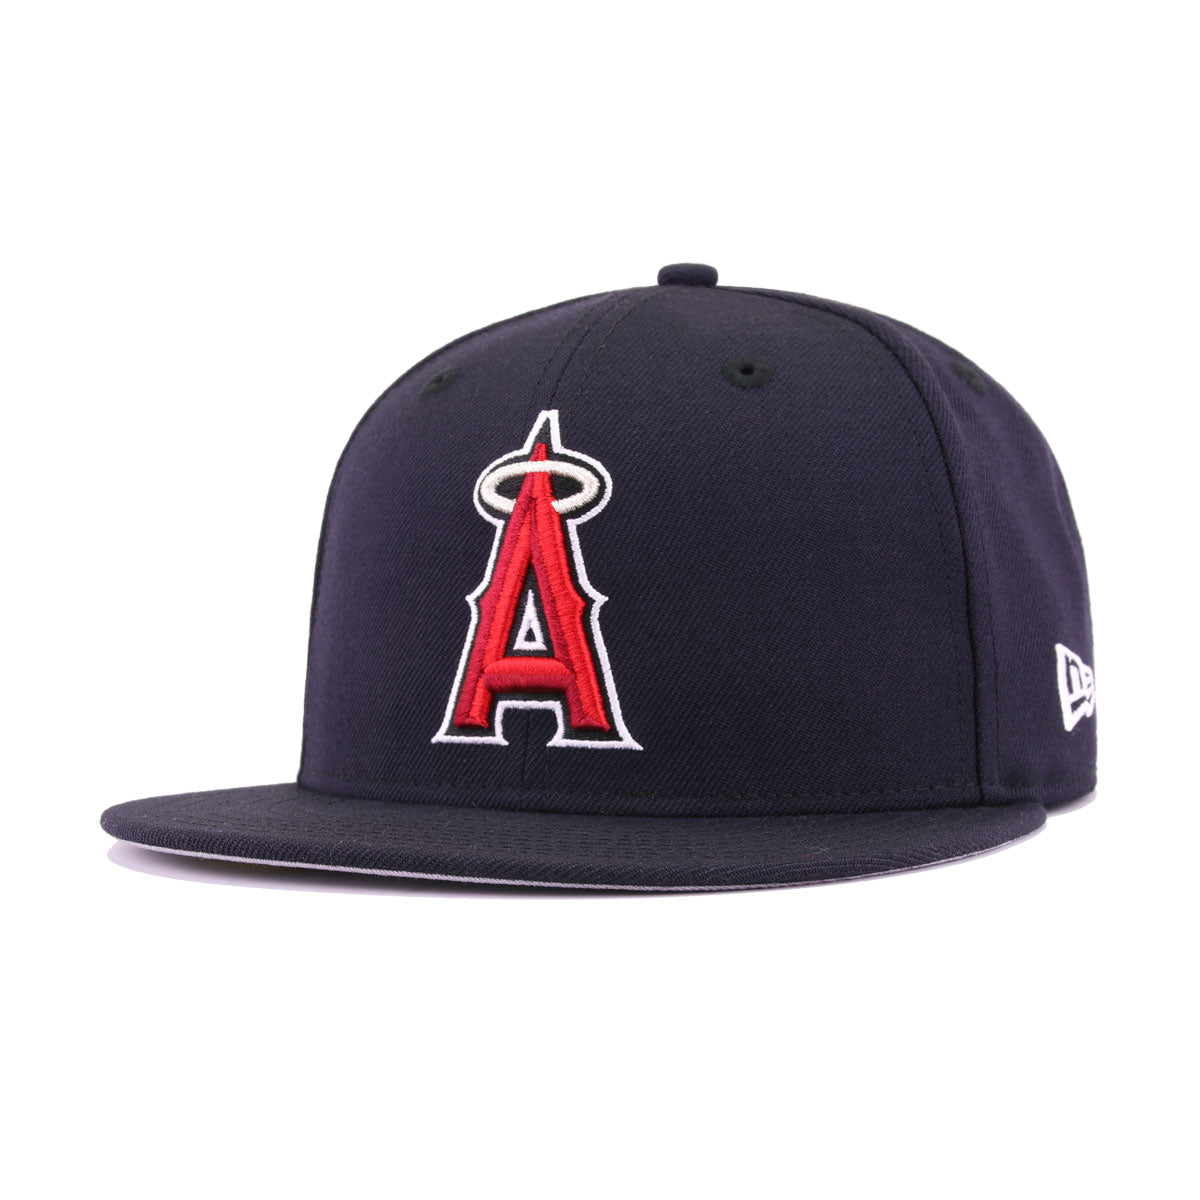 fdaae05f14cde5 Los Angeles Angels Navy Scarlet Metallic Silver New Era 59Fifty Fitted